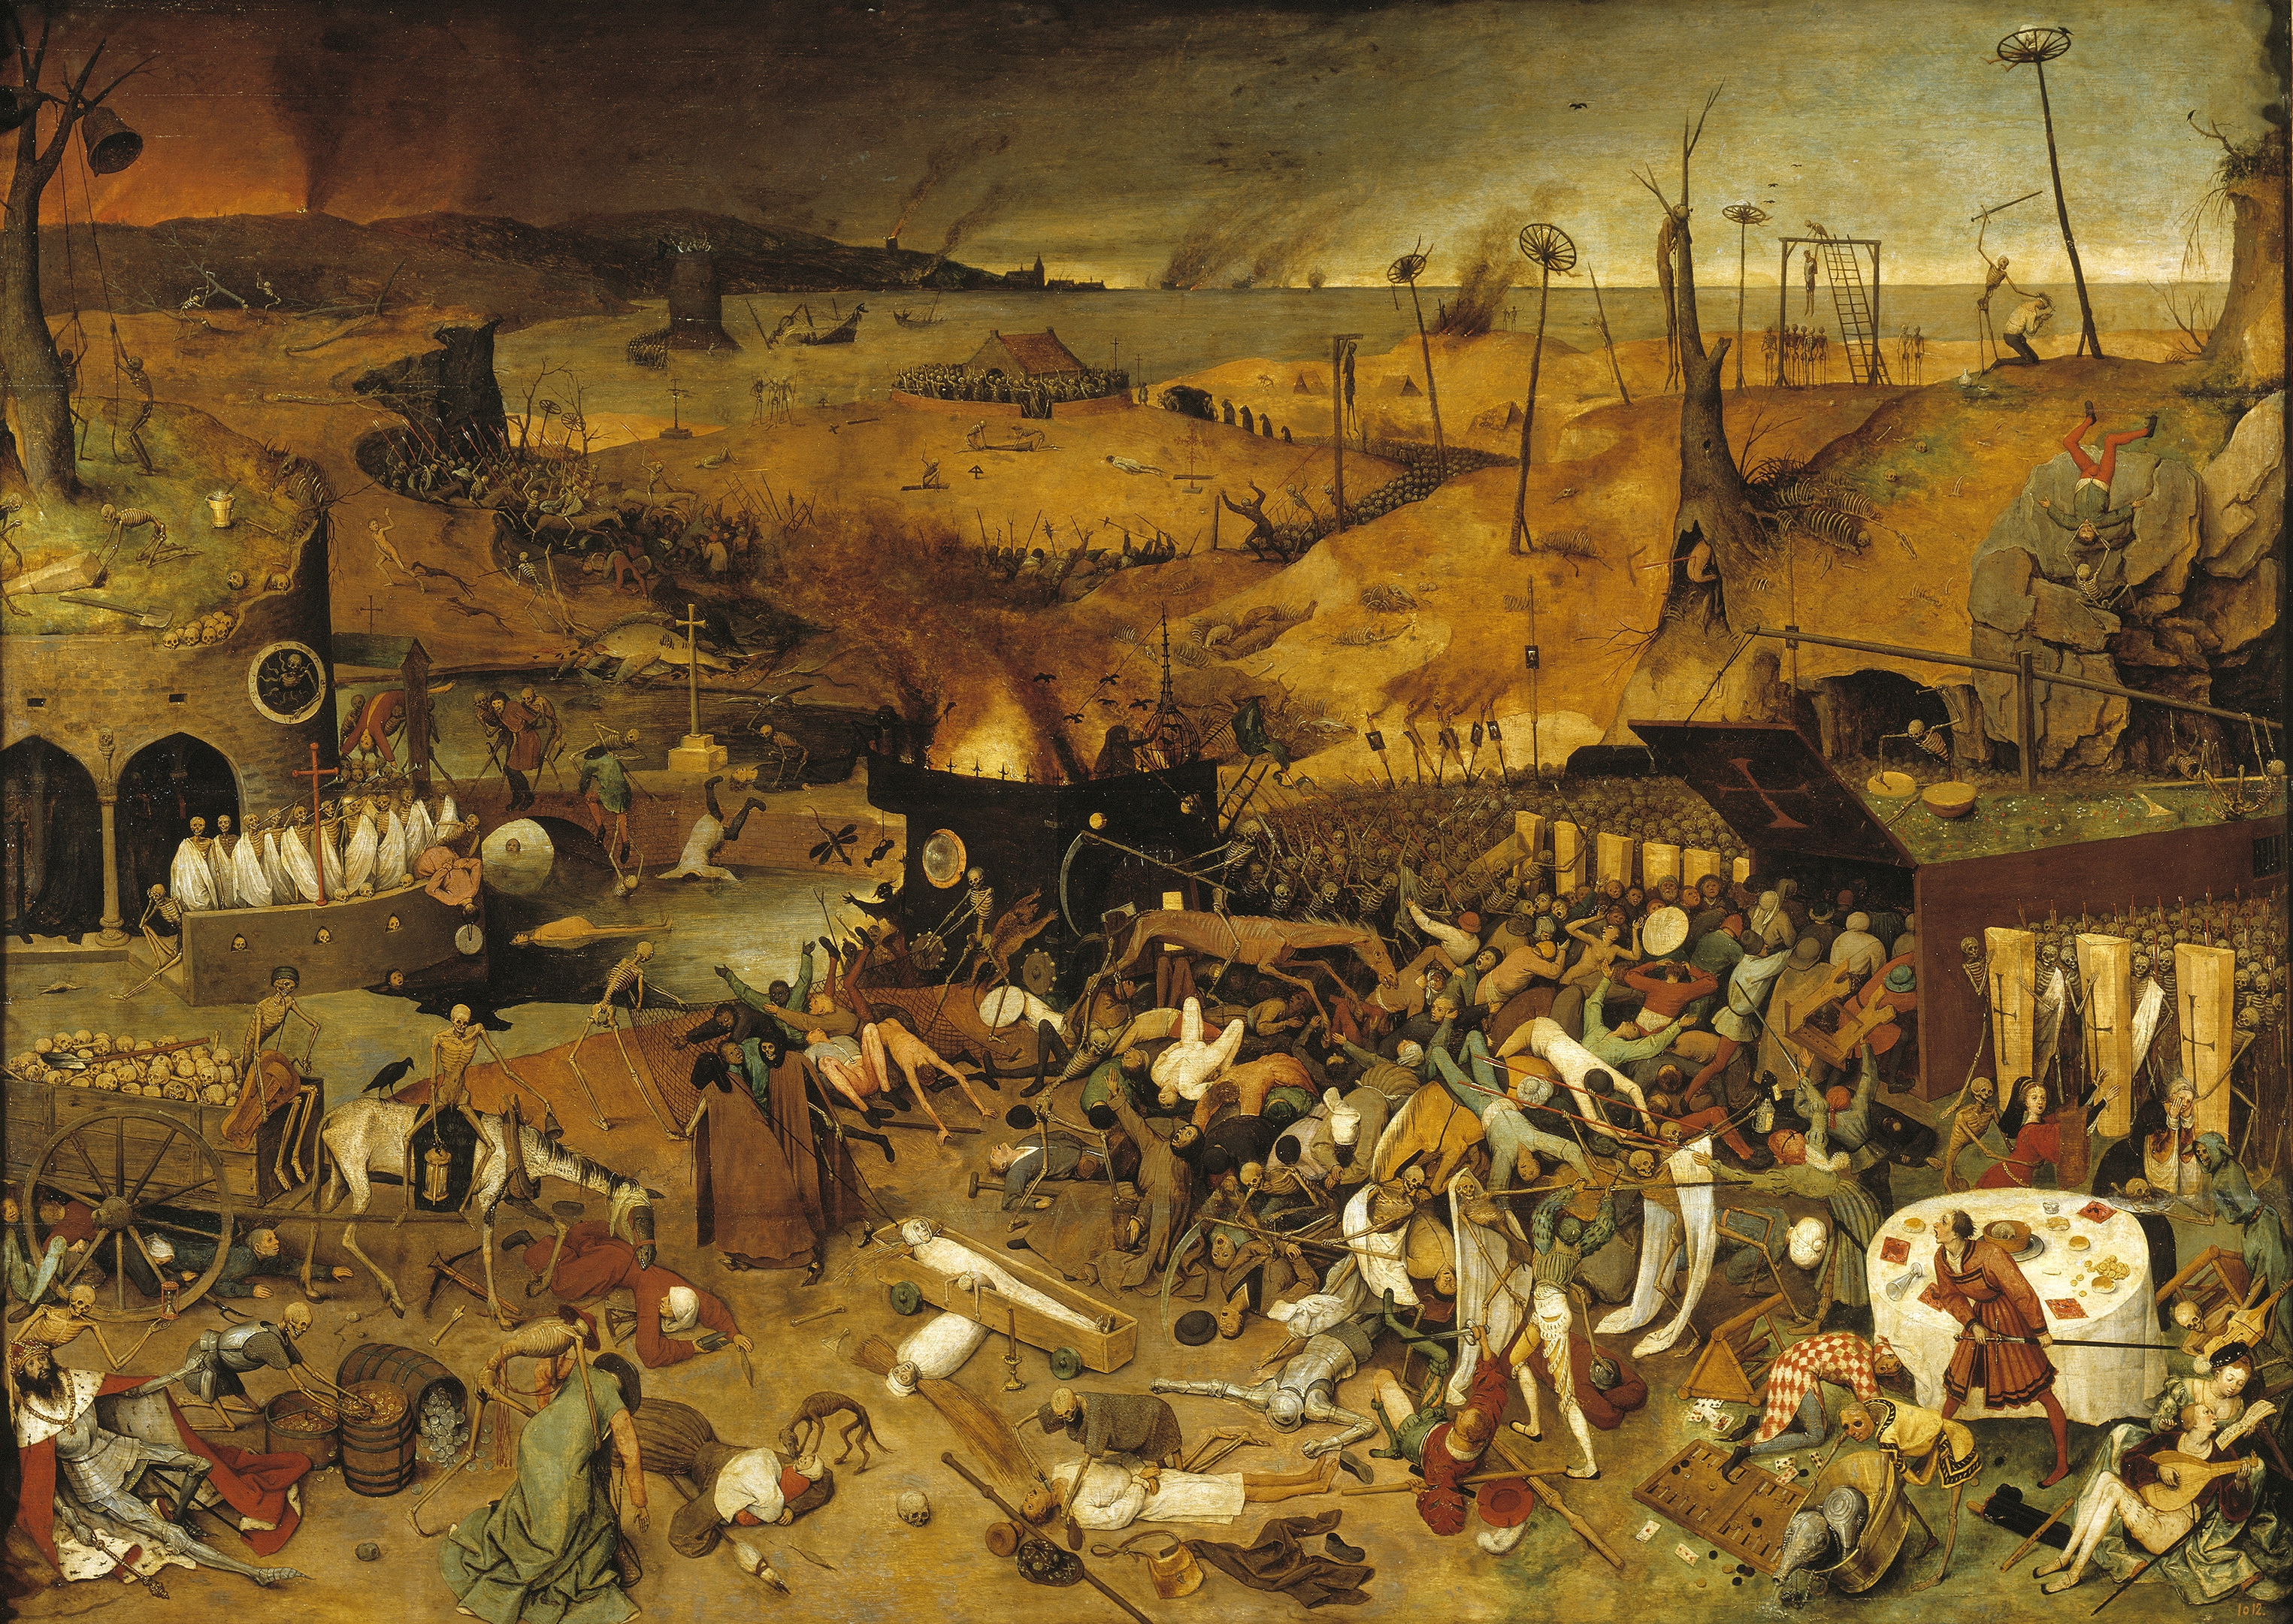 The Triumph of Death (c. 1562) by Pieter Brueghel the Elder reflects the increasingly harsh treatment the Seventeen Provinces received in the 16th century.